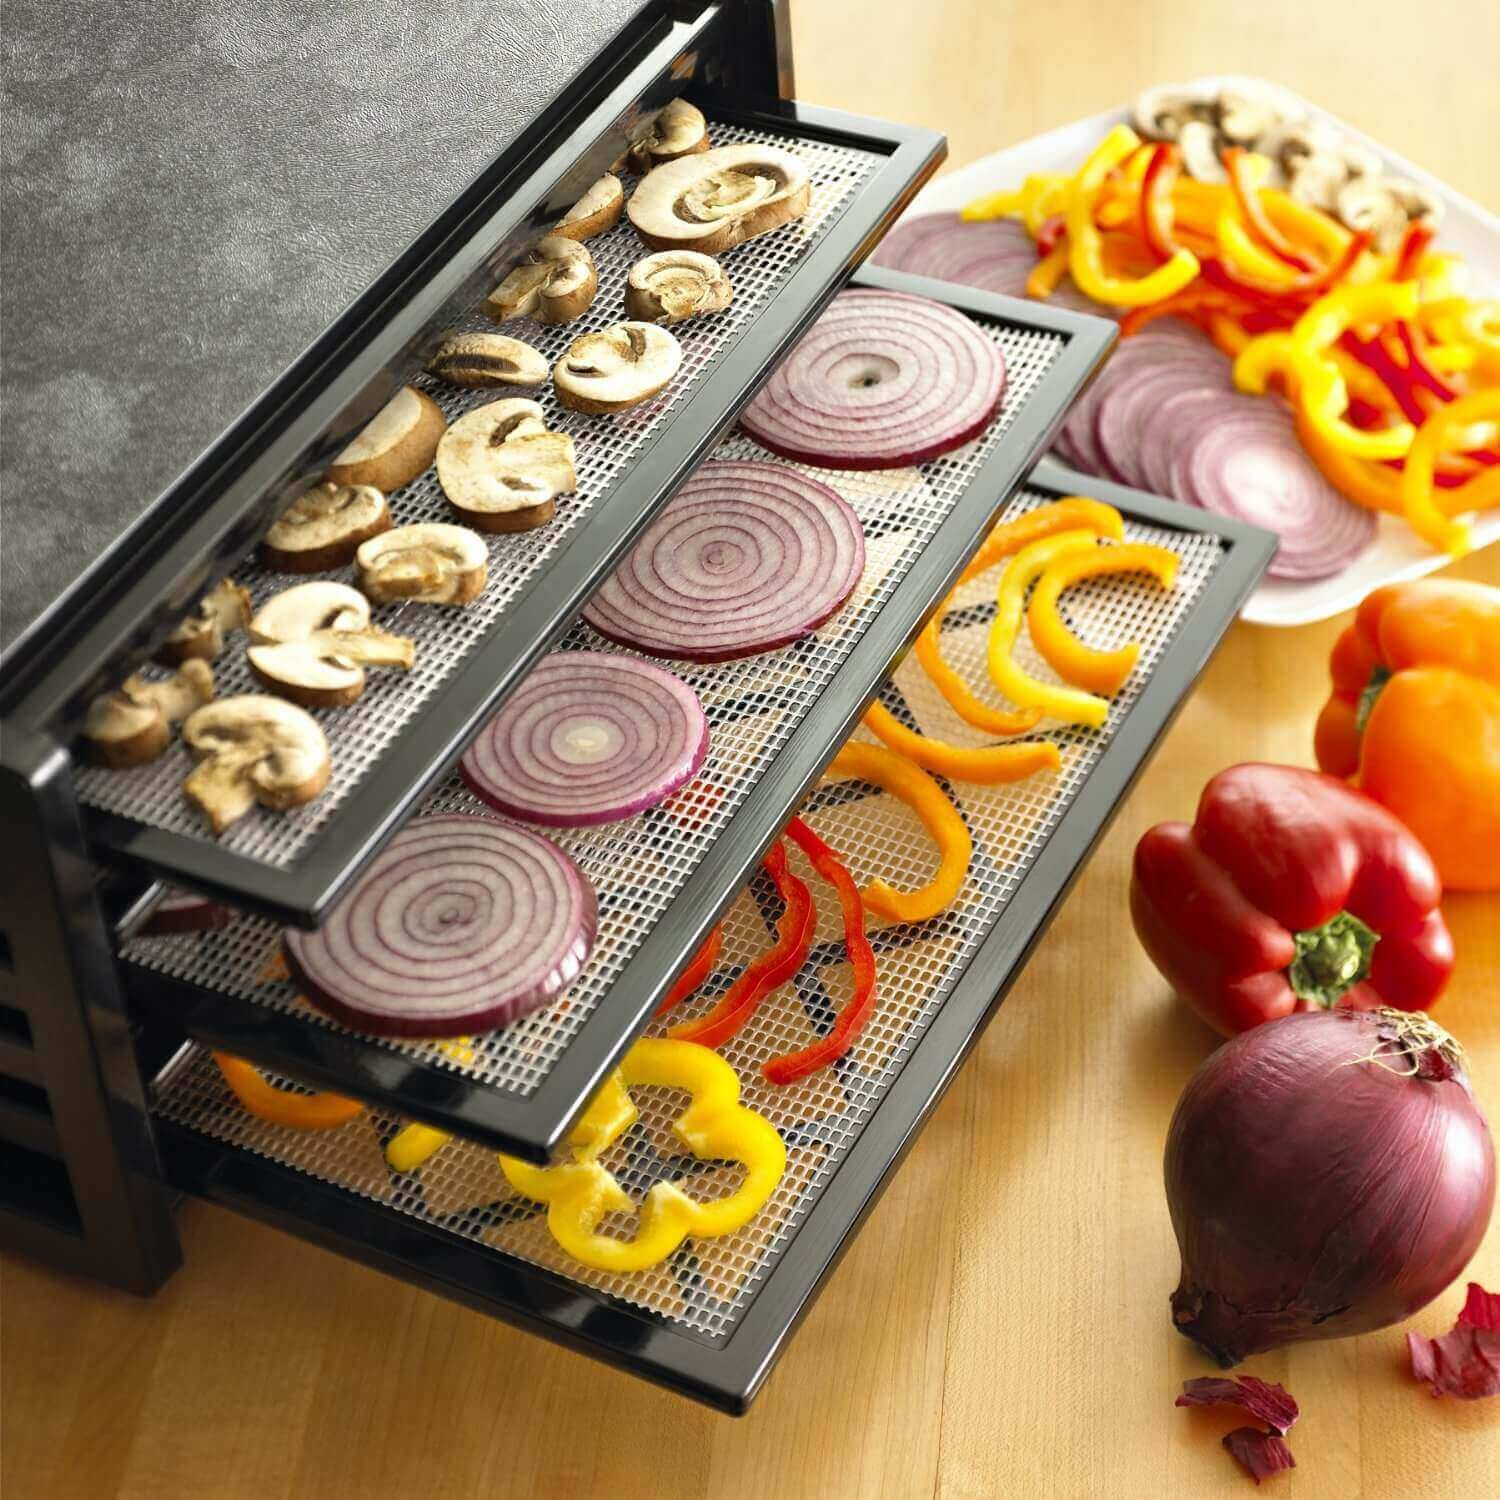 Excalibur 4400 4 tray dehydrator with an assortment of vegetables placed on the trays.